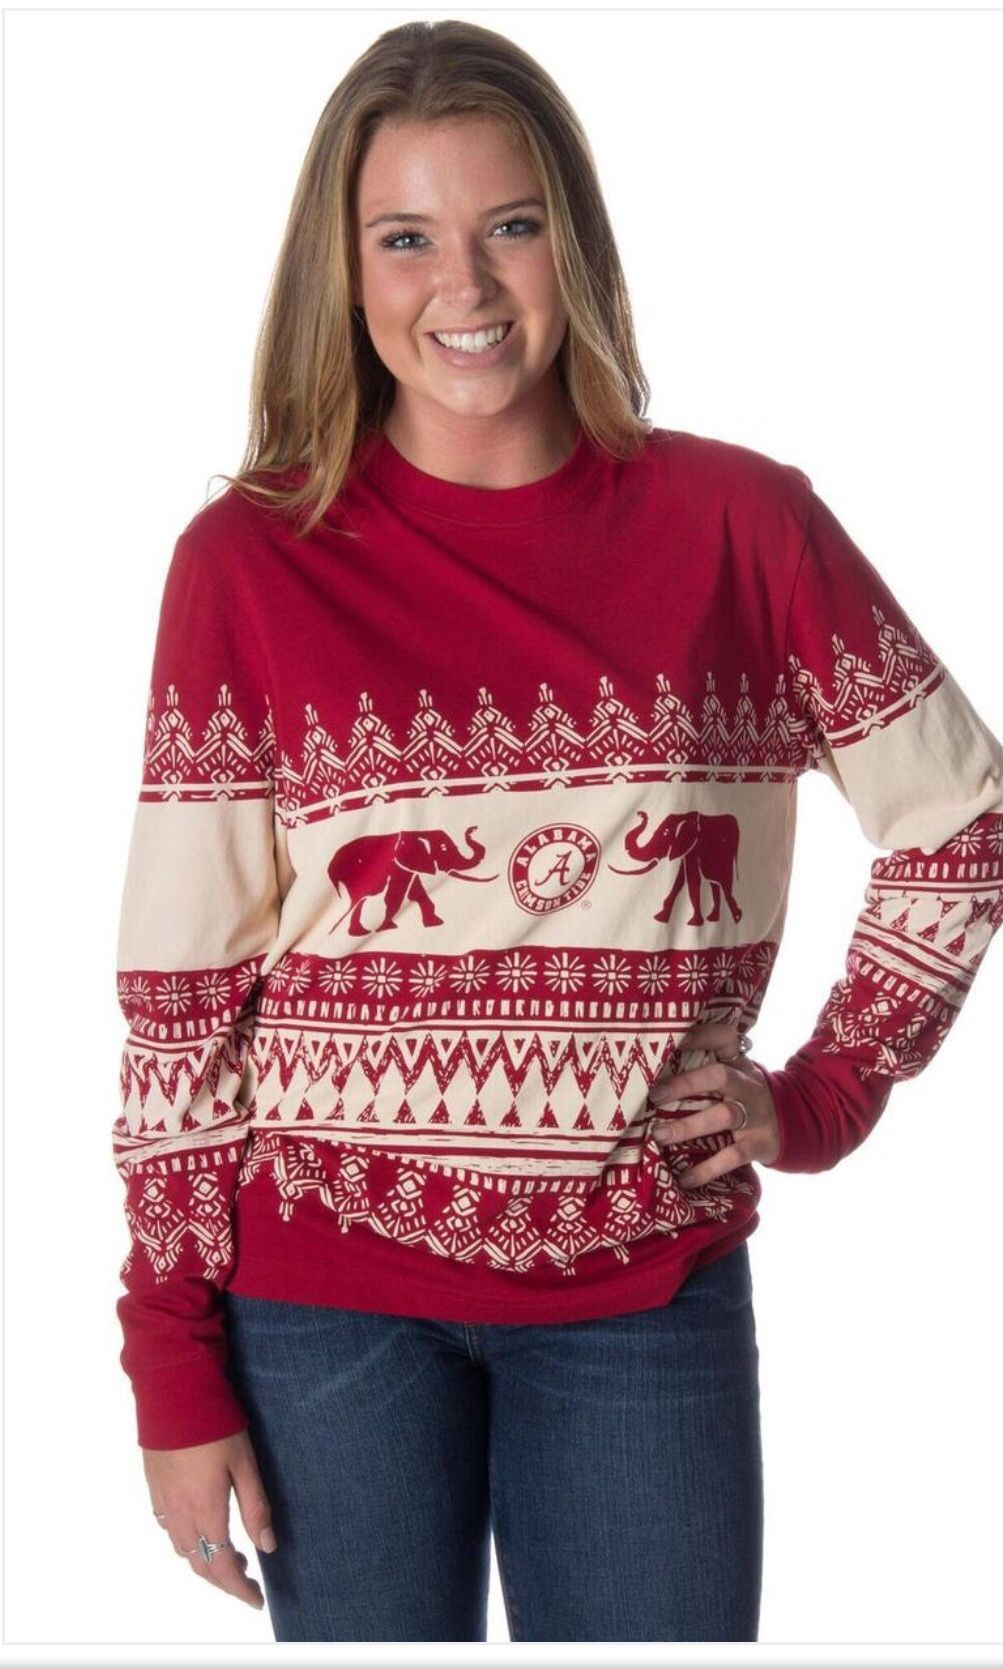 Alabama Collegiate Christmas Sweater Tee | Products | Pinterest ...